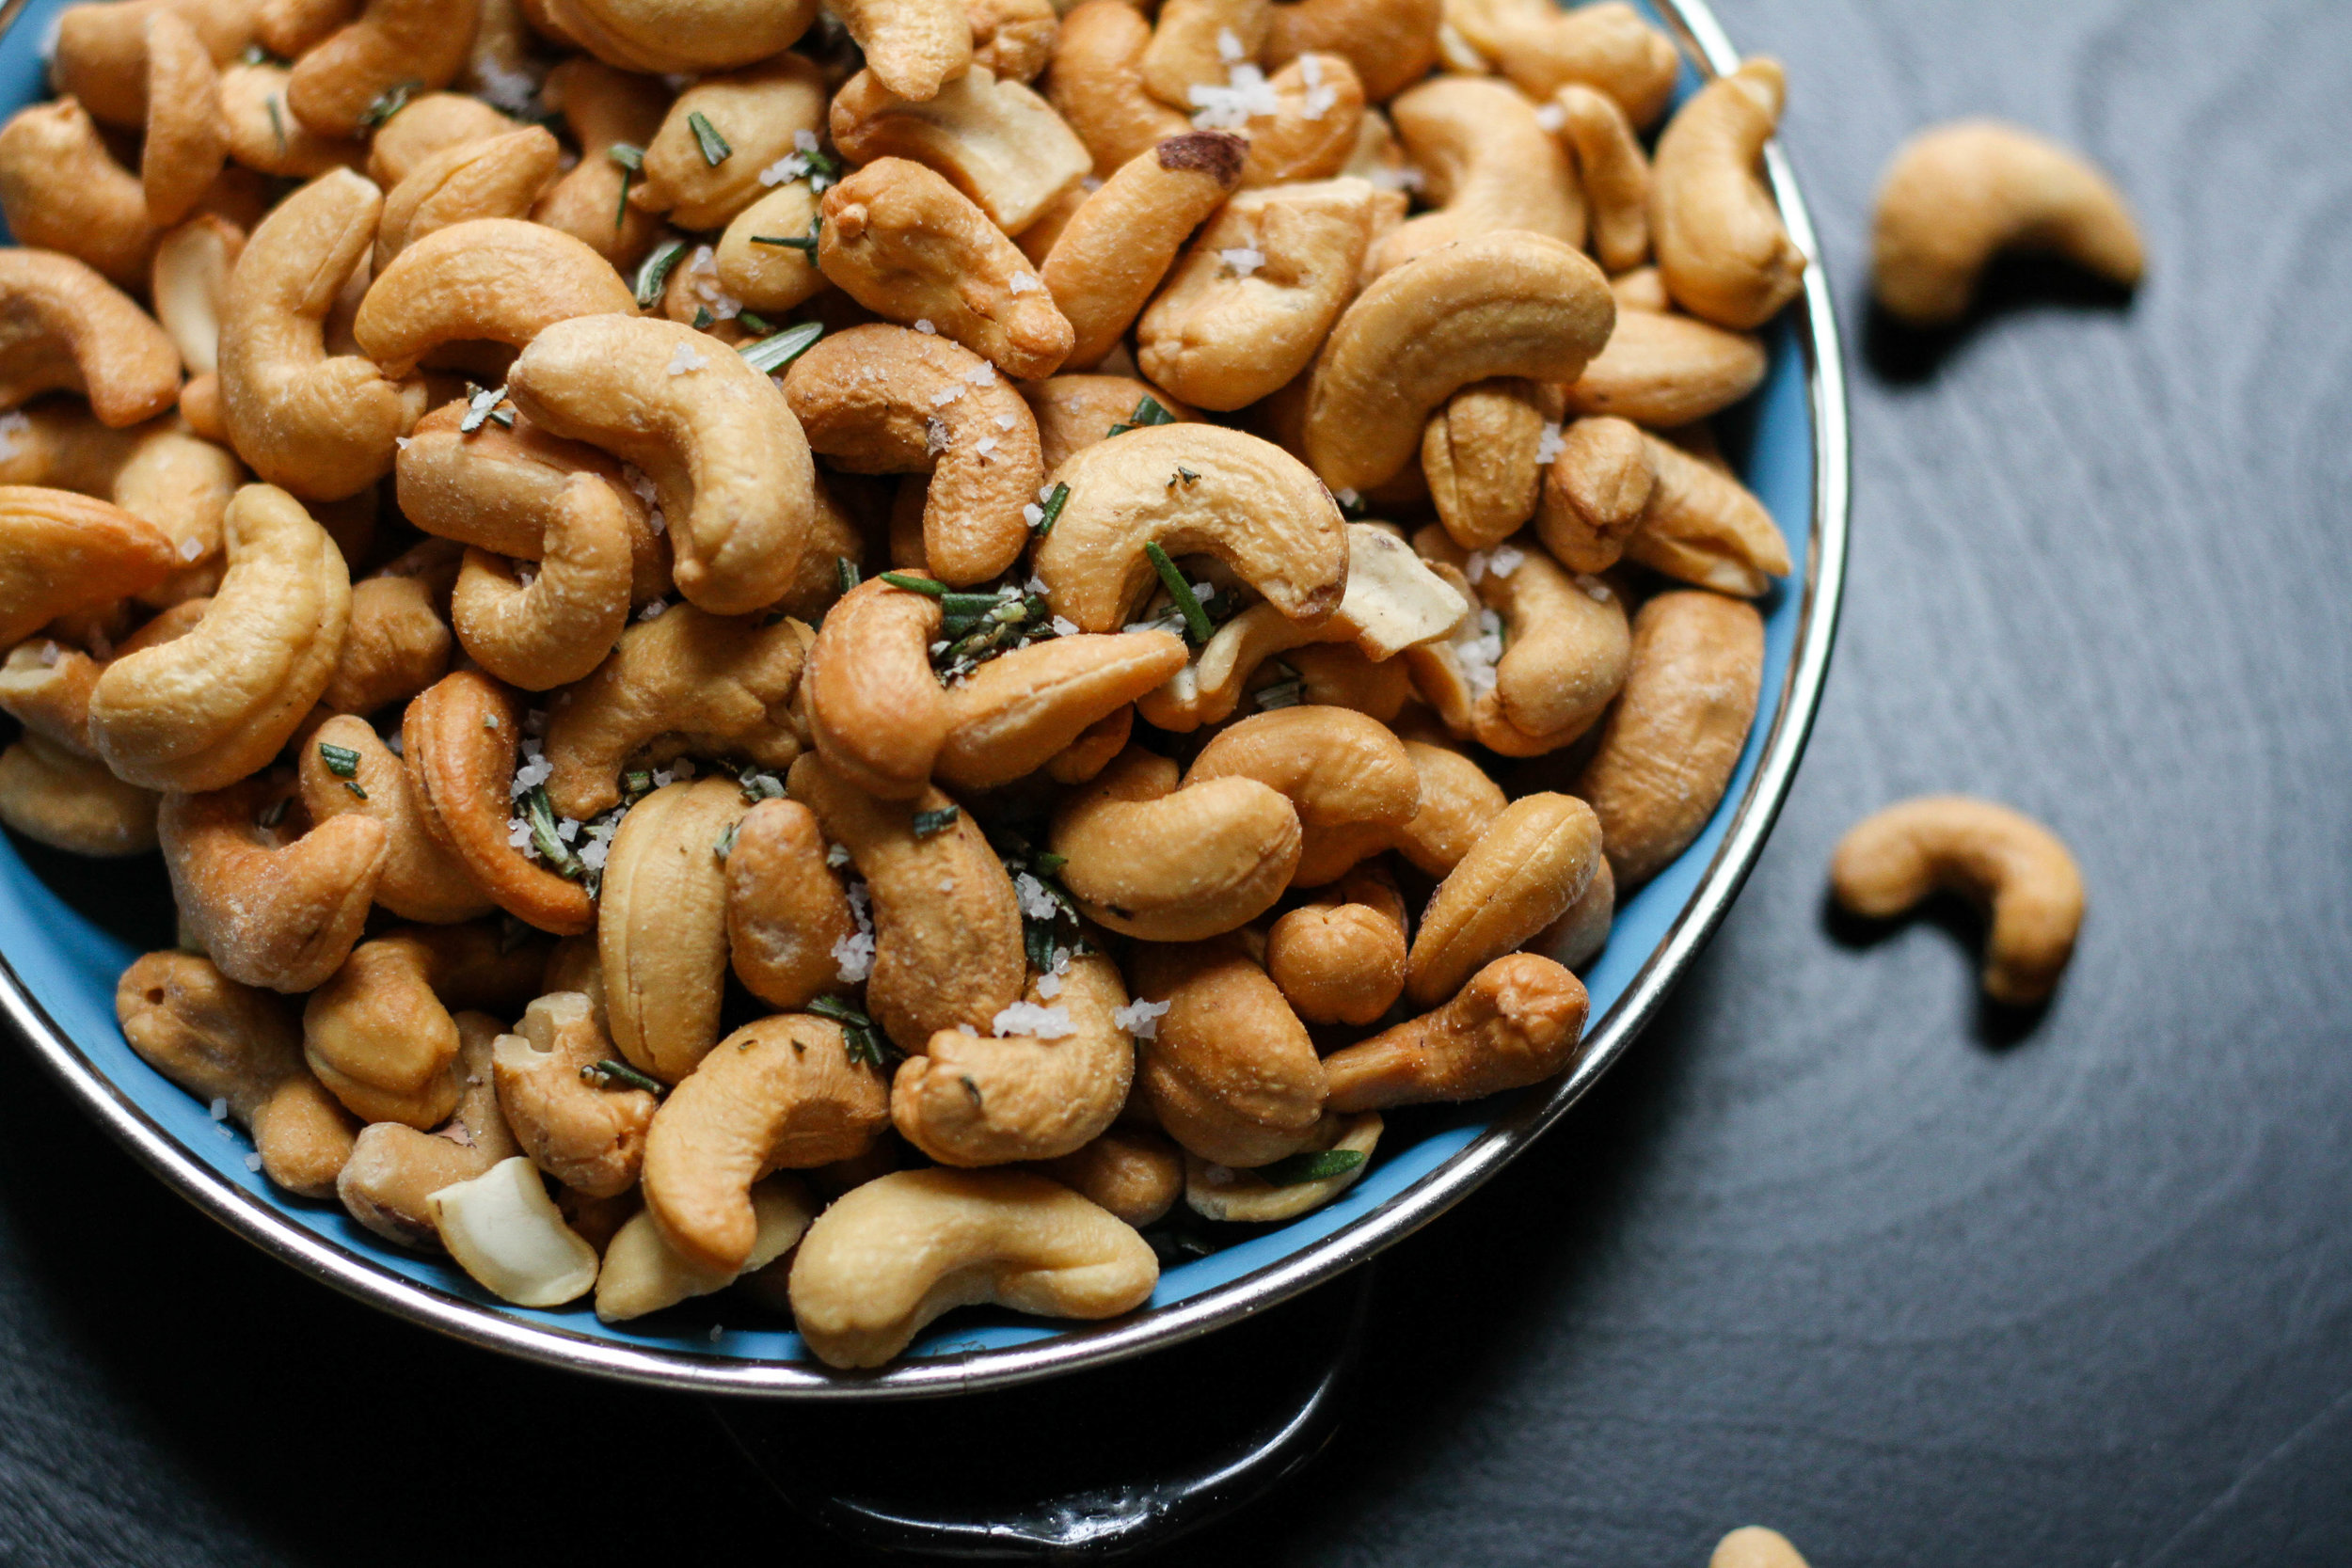 Nuts, especially cashews and almonds, are an excellent source of B vitamins, magnesium and zinc.